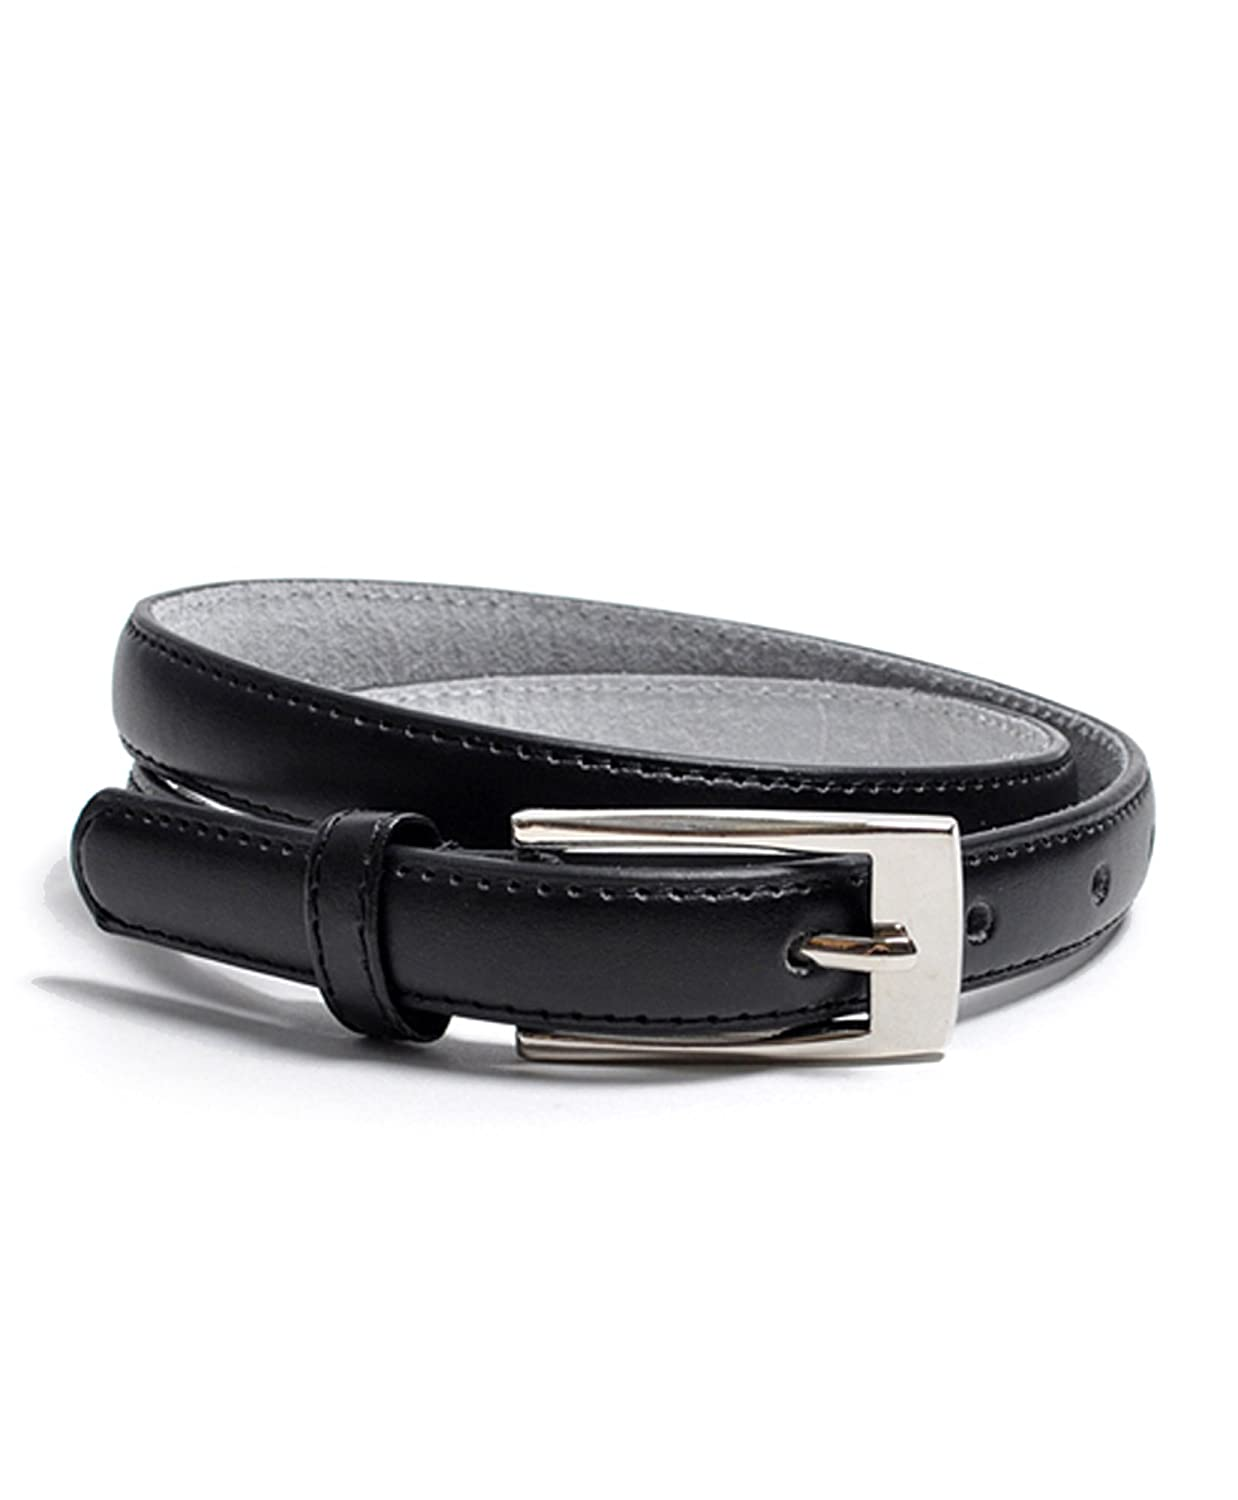 "Solid Color Leather Adjustable Skinny Belt, X Large (39""-43""), Black"